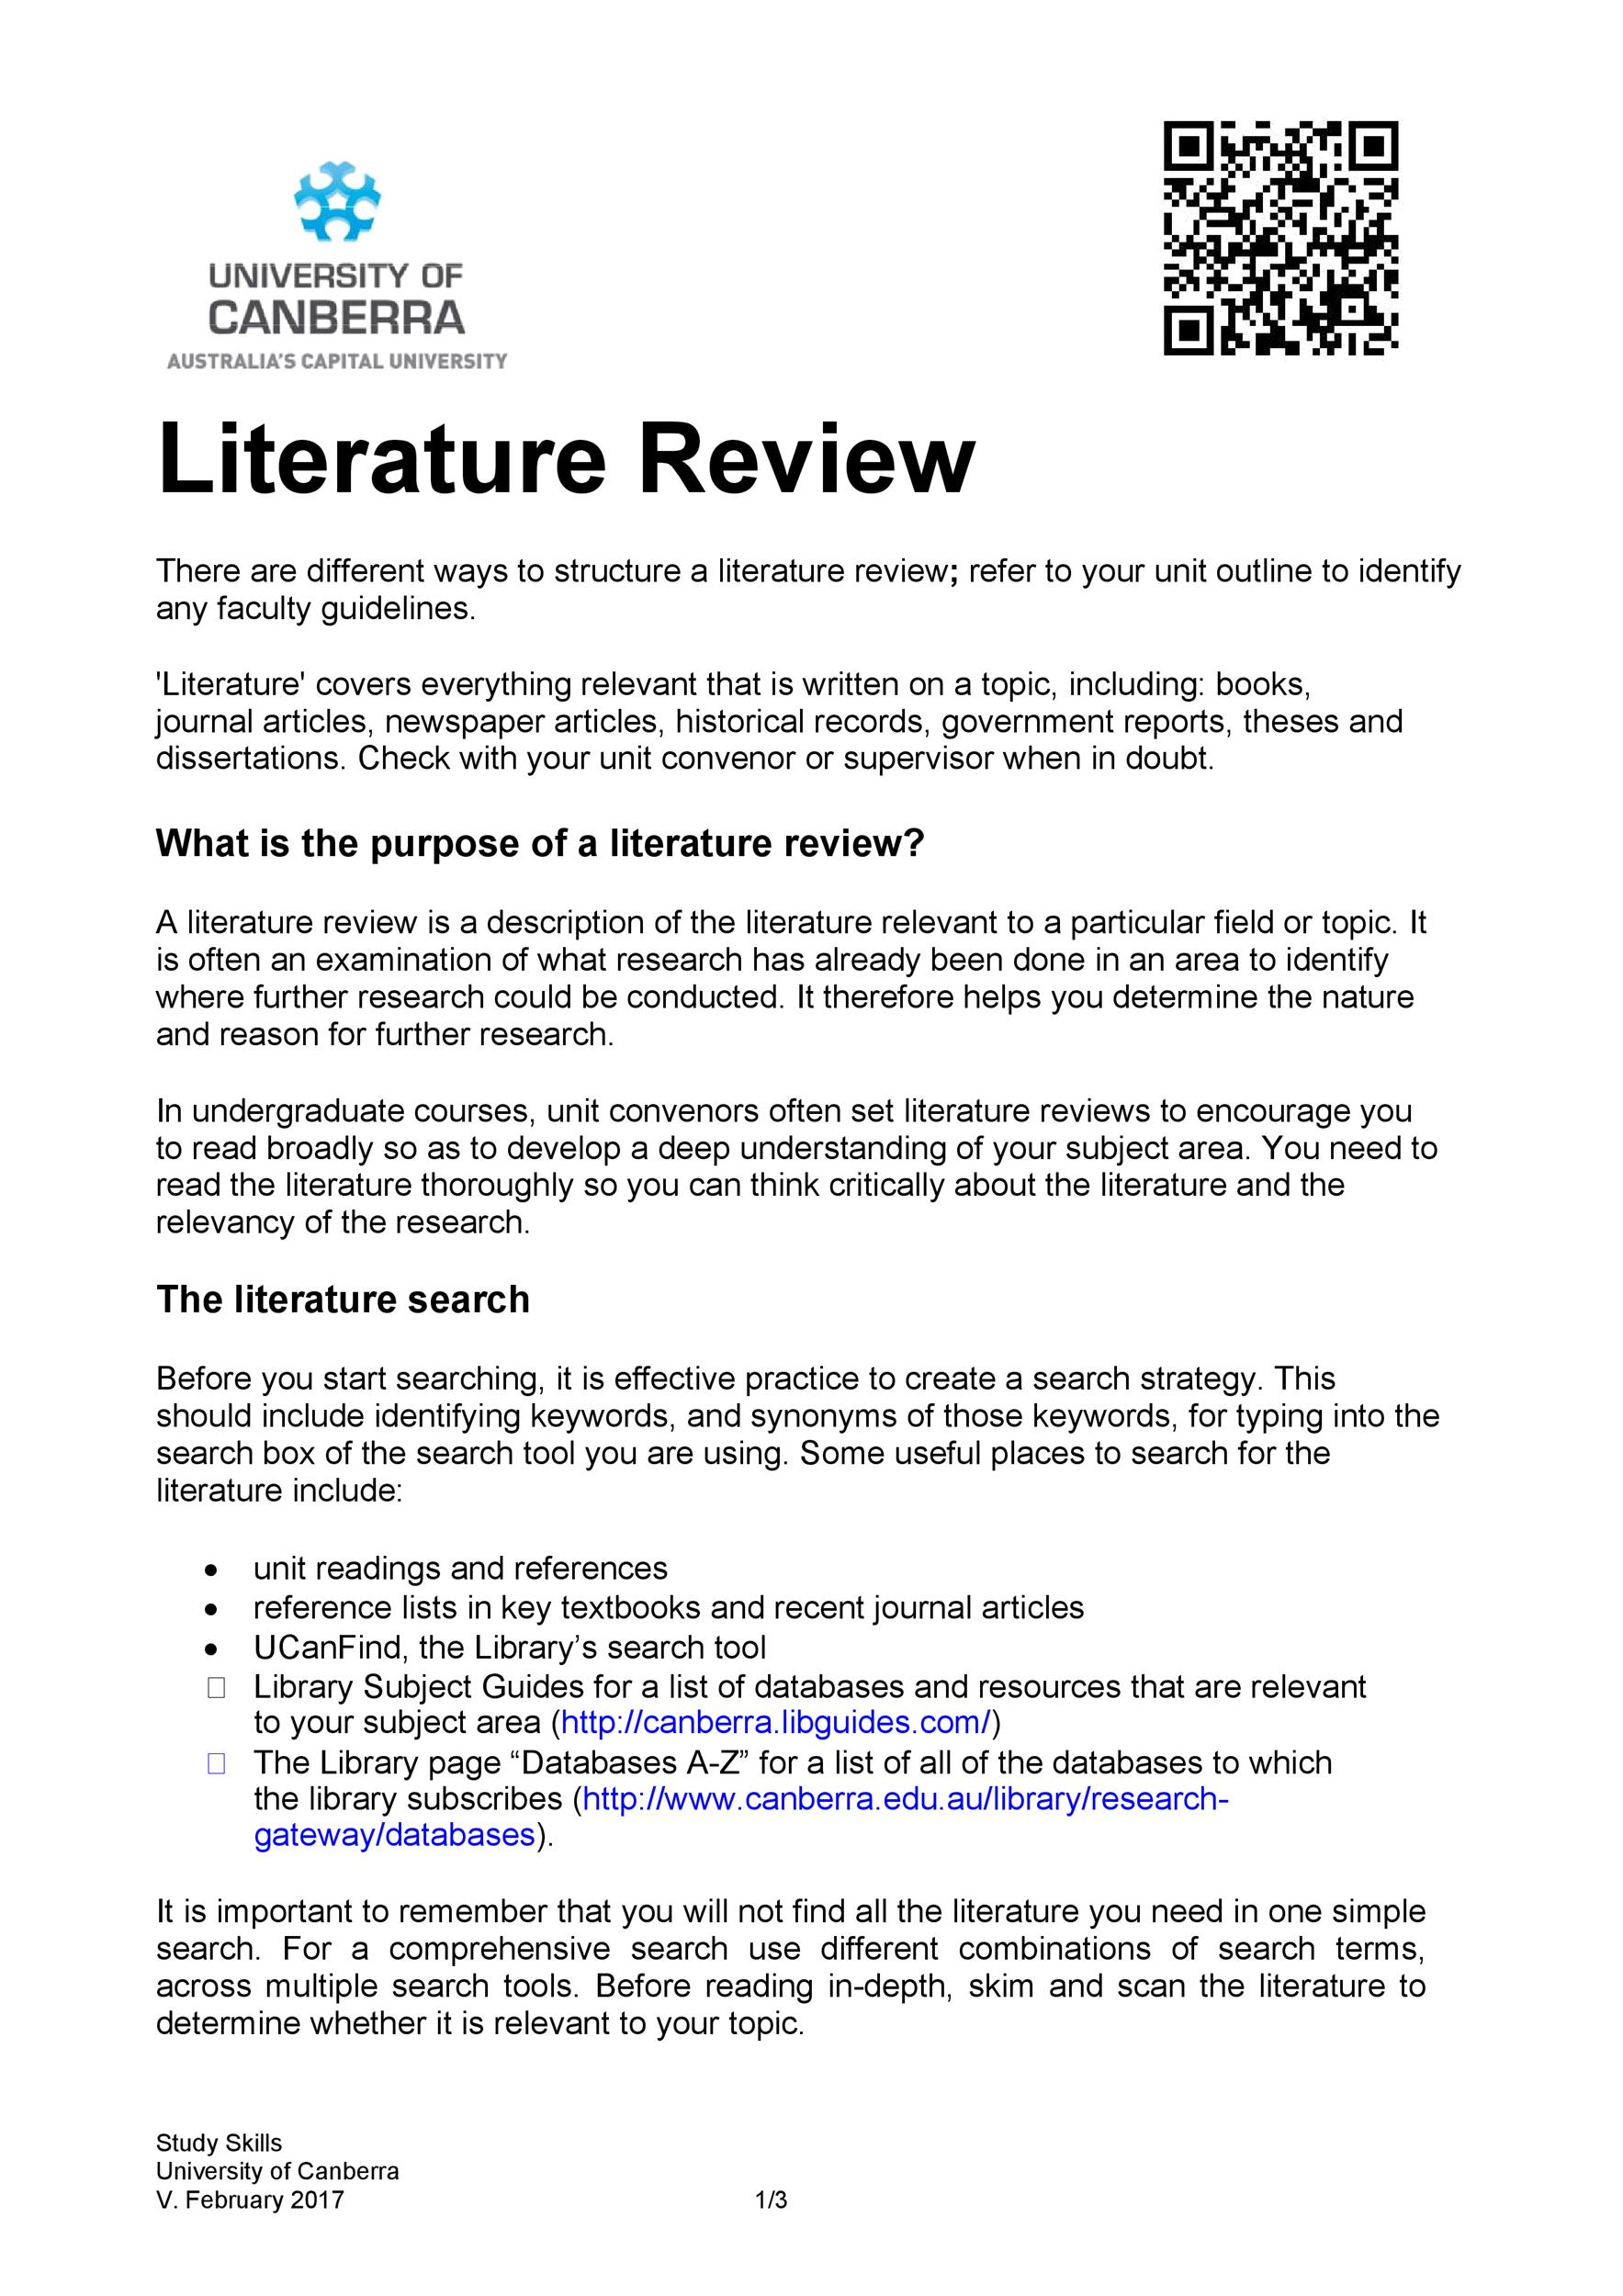 Free literature review template 09